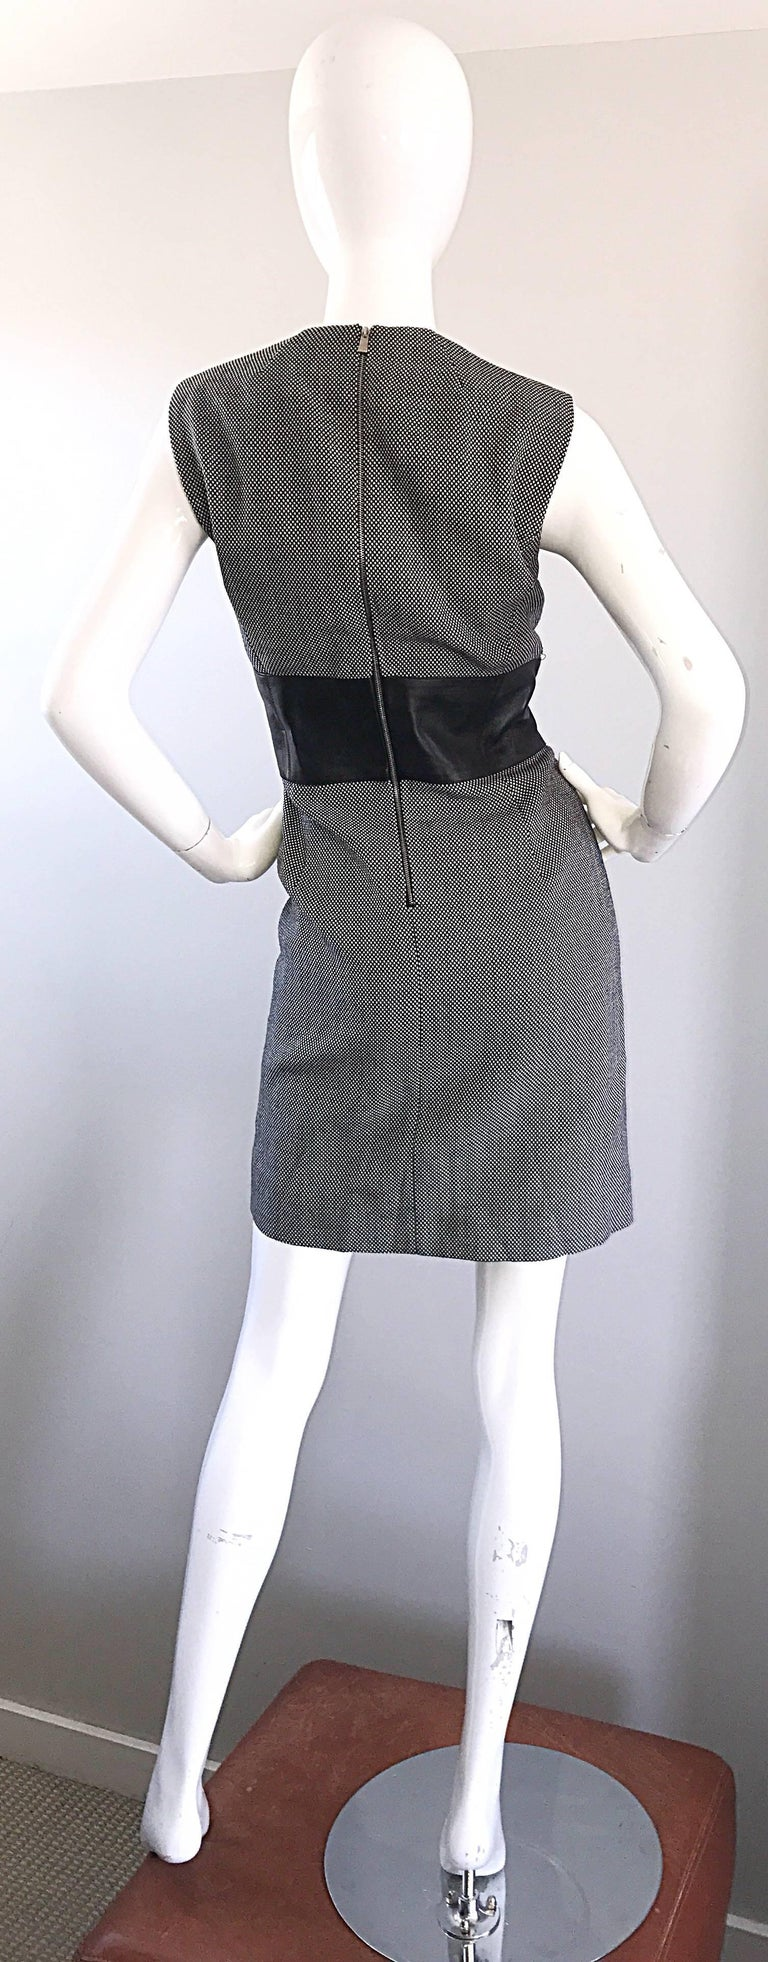 New Michael Kors Collection Size 14 Black and White Wool + Leather Classic Dress 4